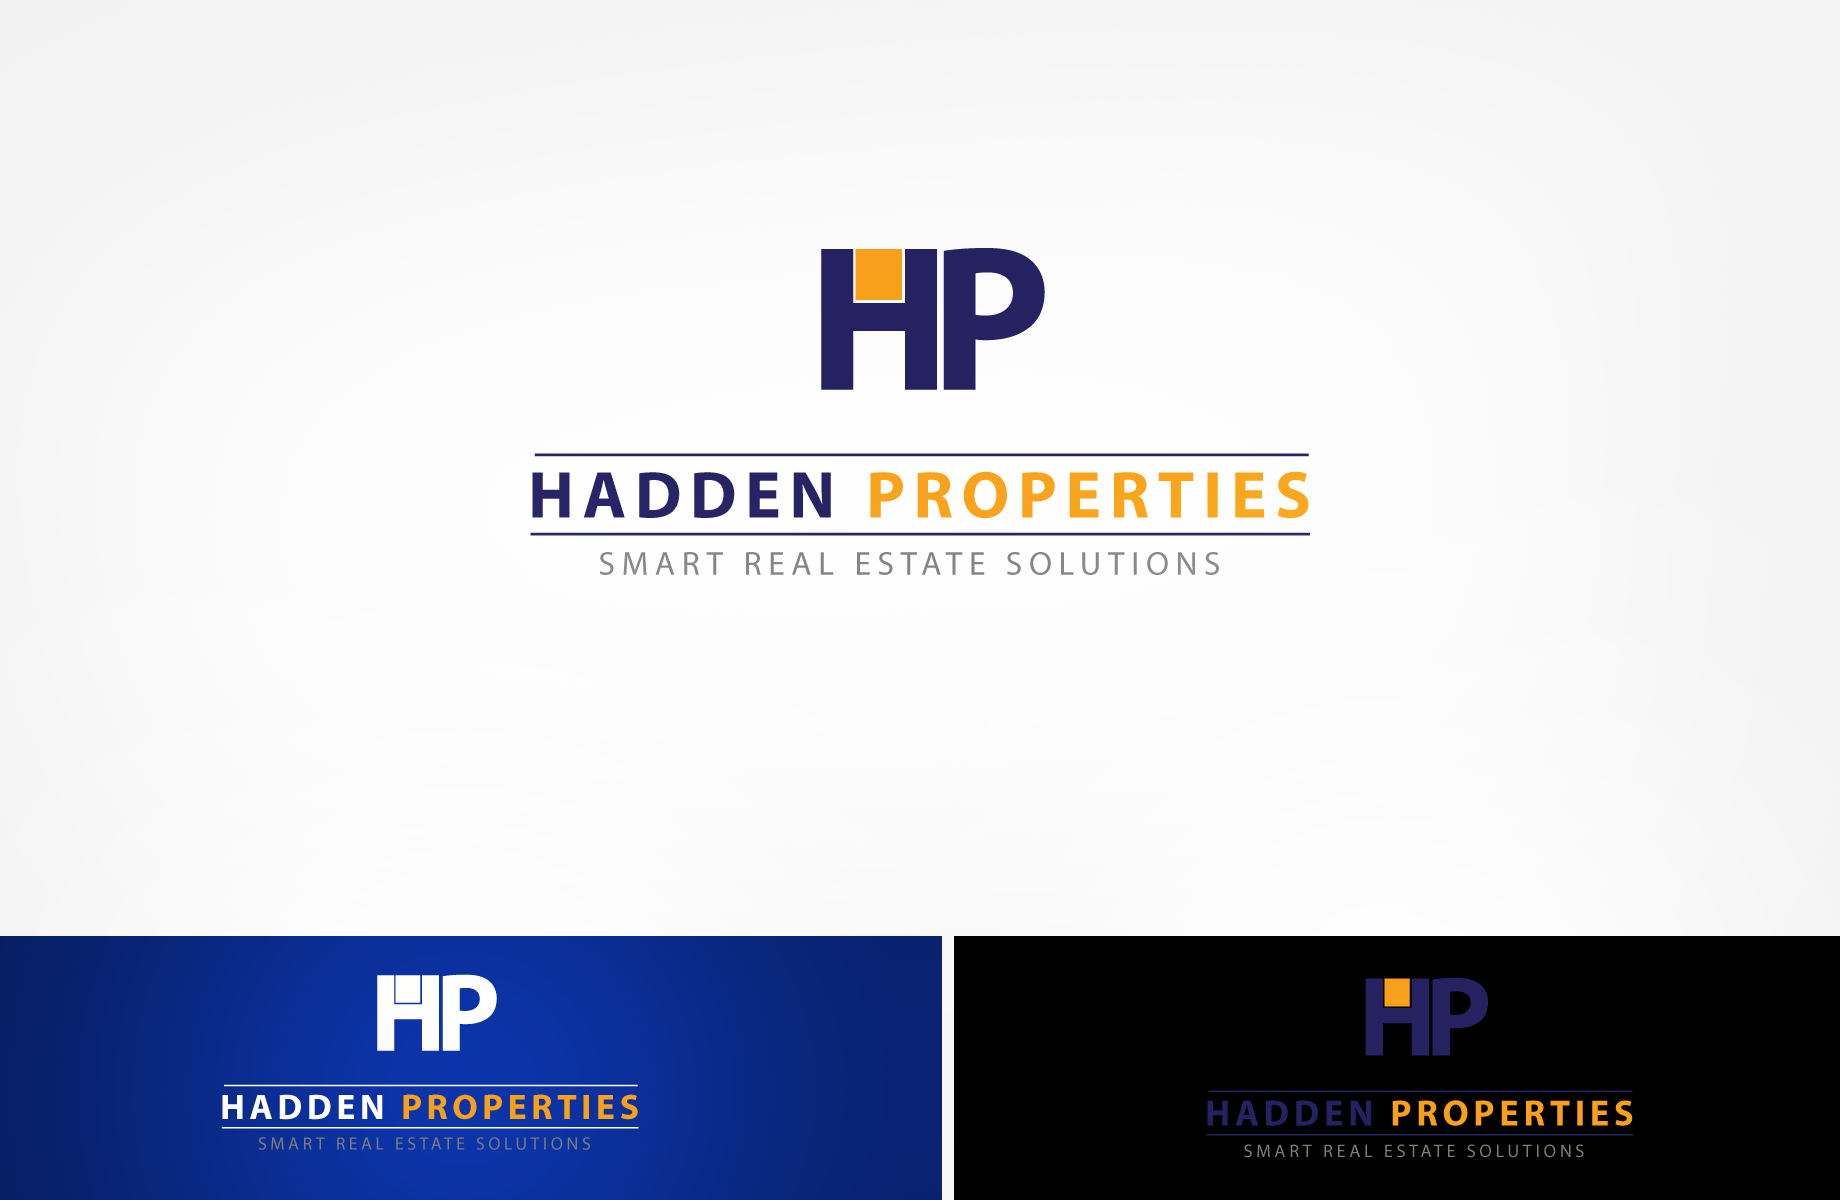 Logo Design by Jan Chua - Entry No. 103 in the Logo Design Contest Artistic Logo Design for Hadden Properties.